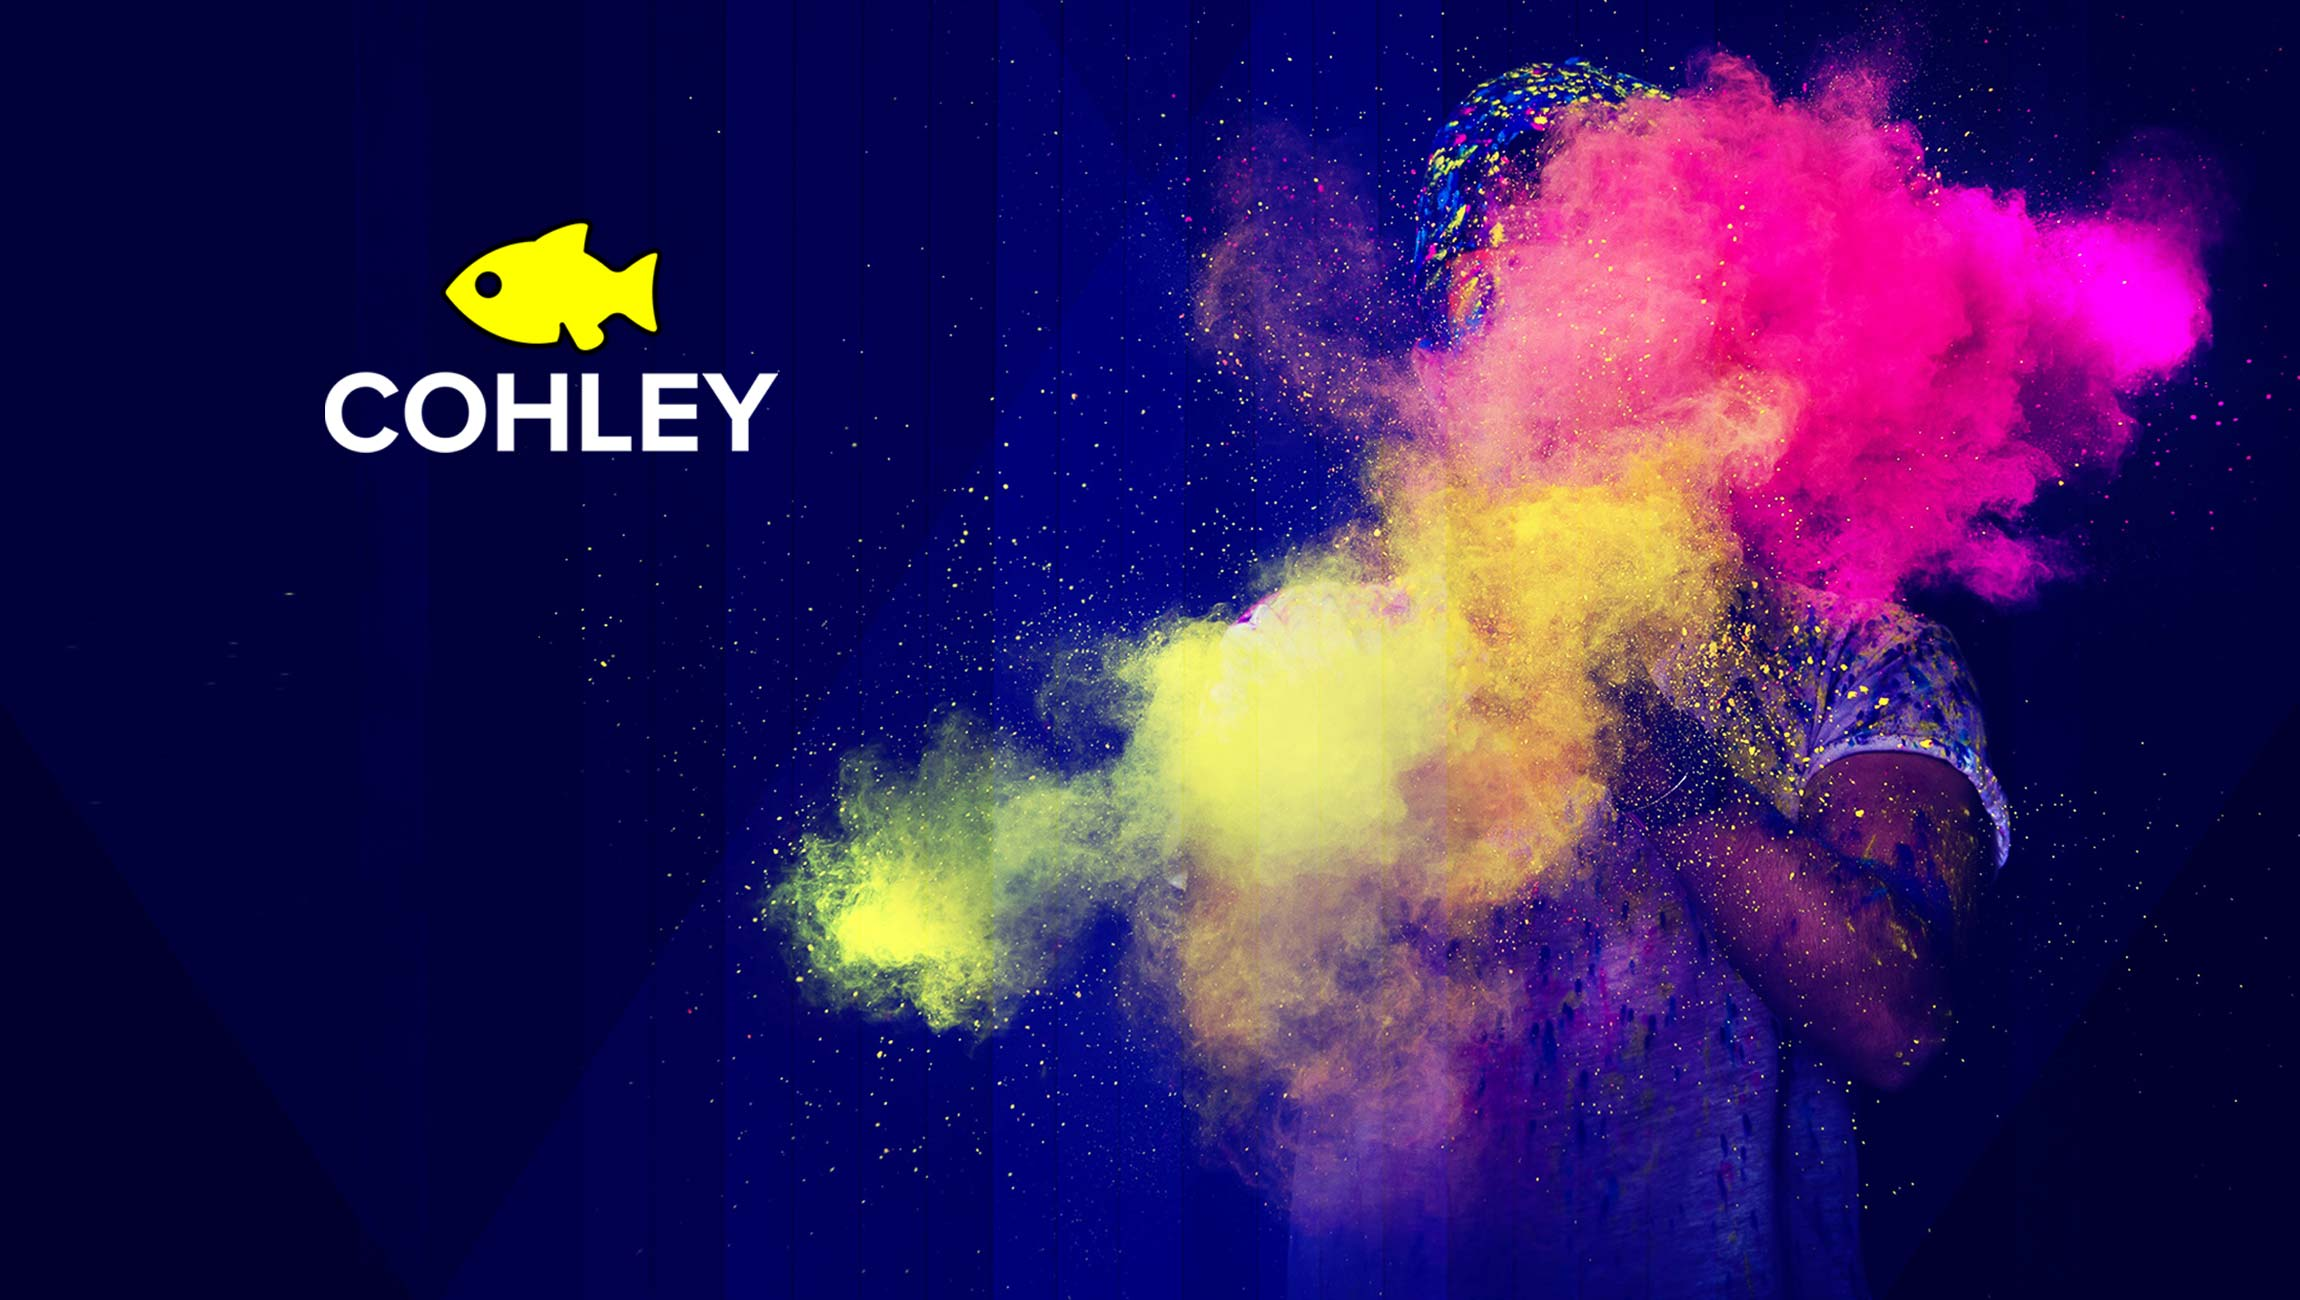 Cohley Raises $1.5 Million to Change the Way Brands Generate Content